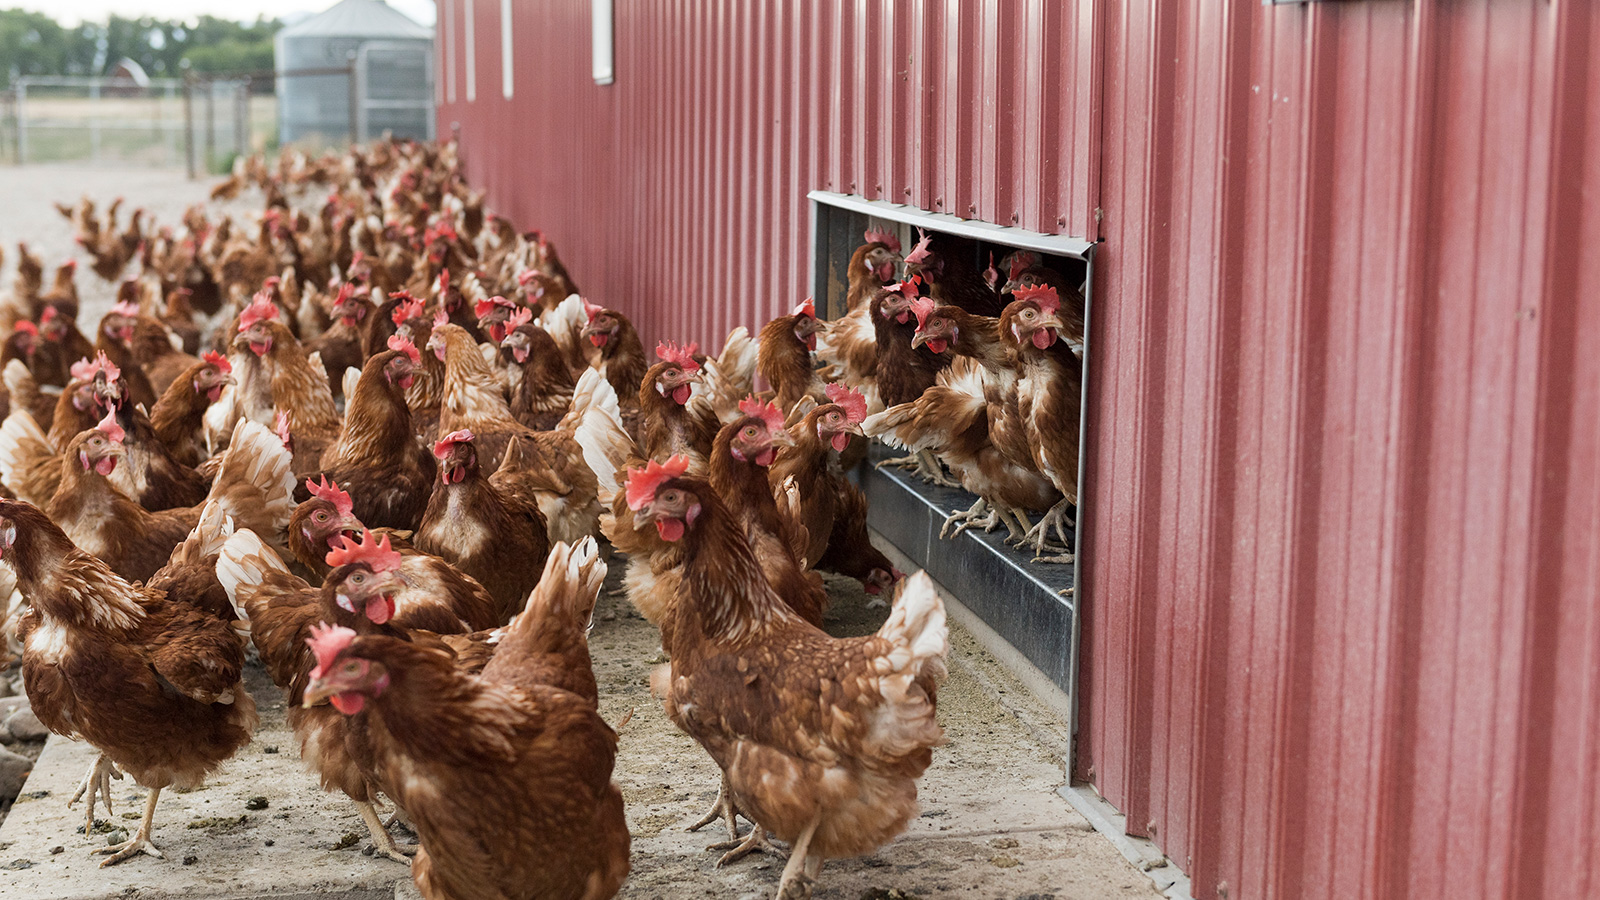 A flock of brown hens emerges from a chicken-sized door in a red barn.